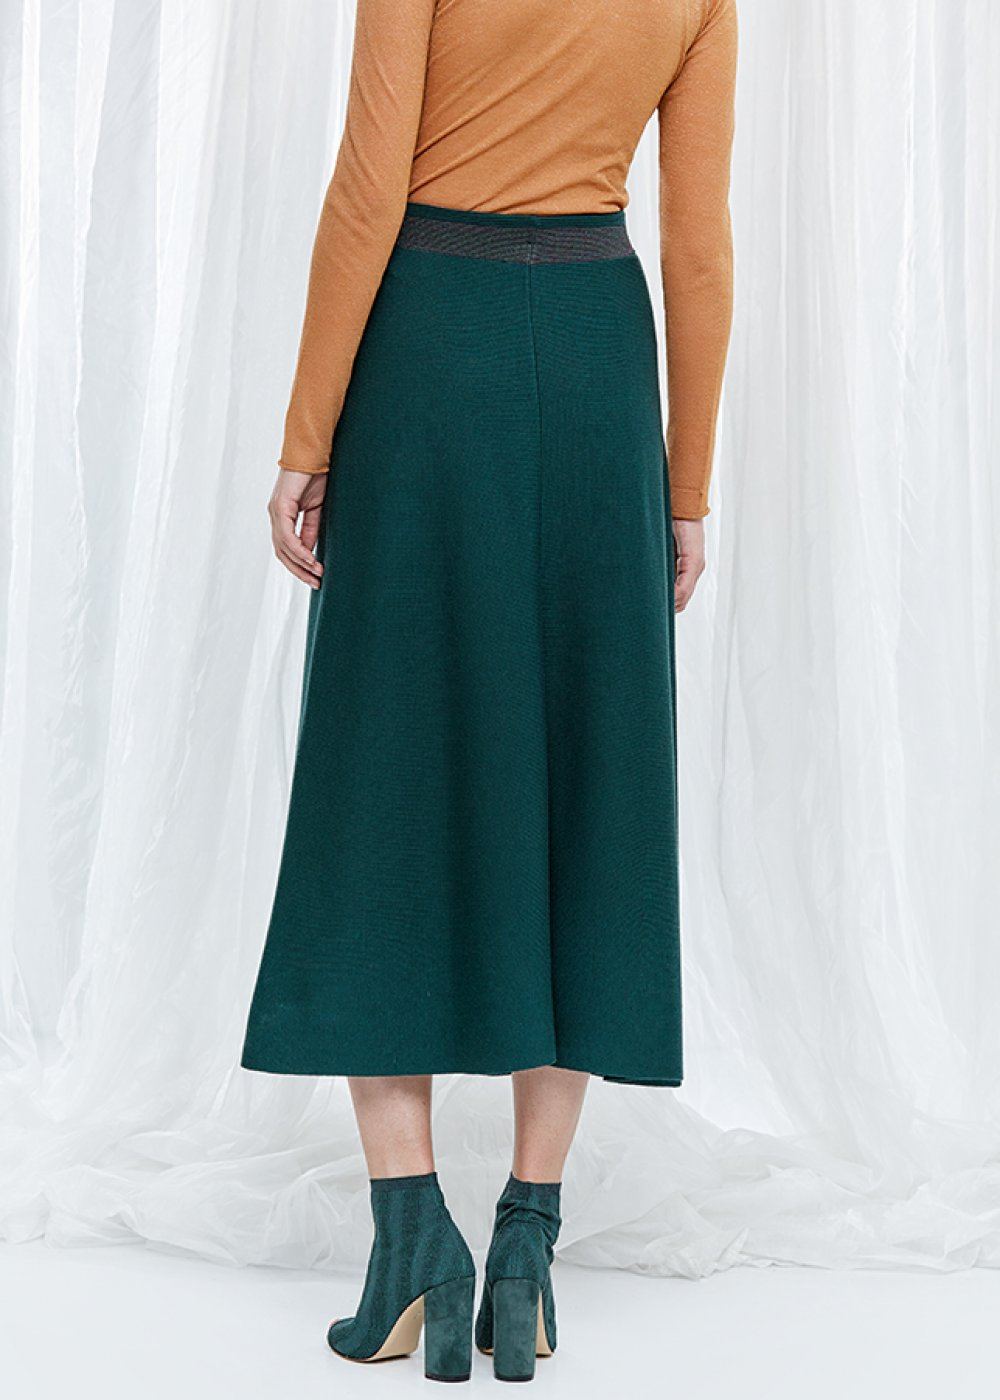 Wool Blend Ivy Green Maxi Knit Skirt